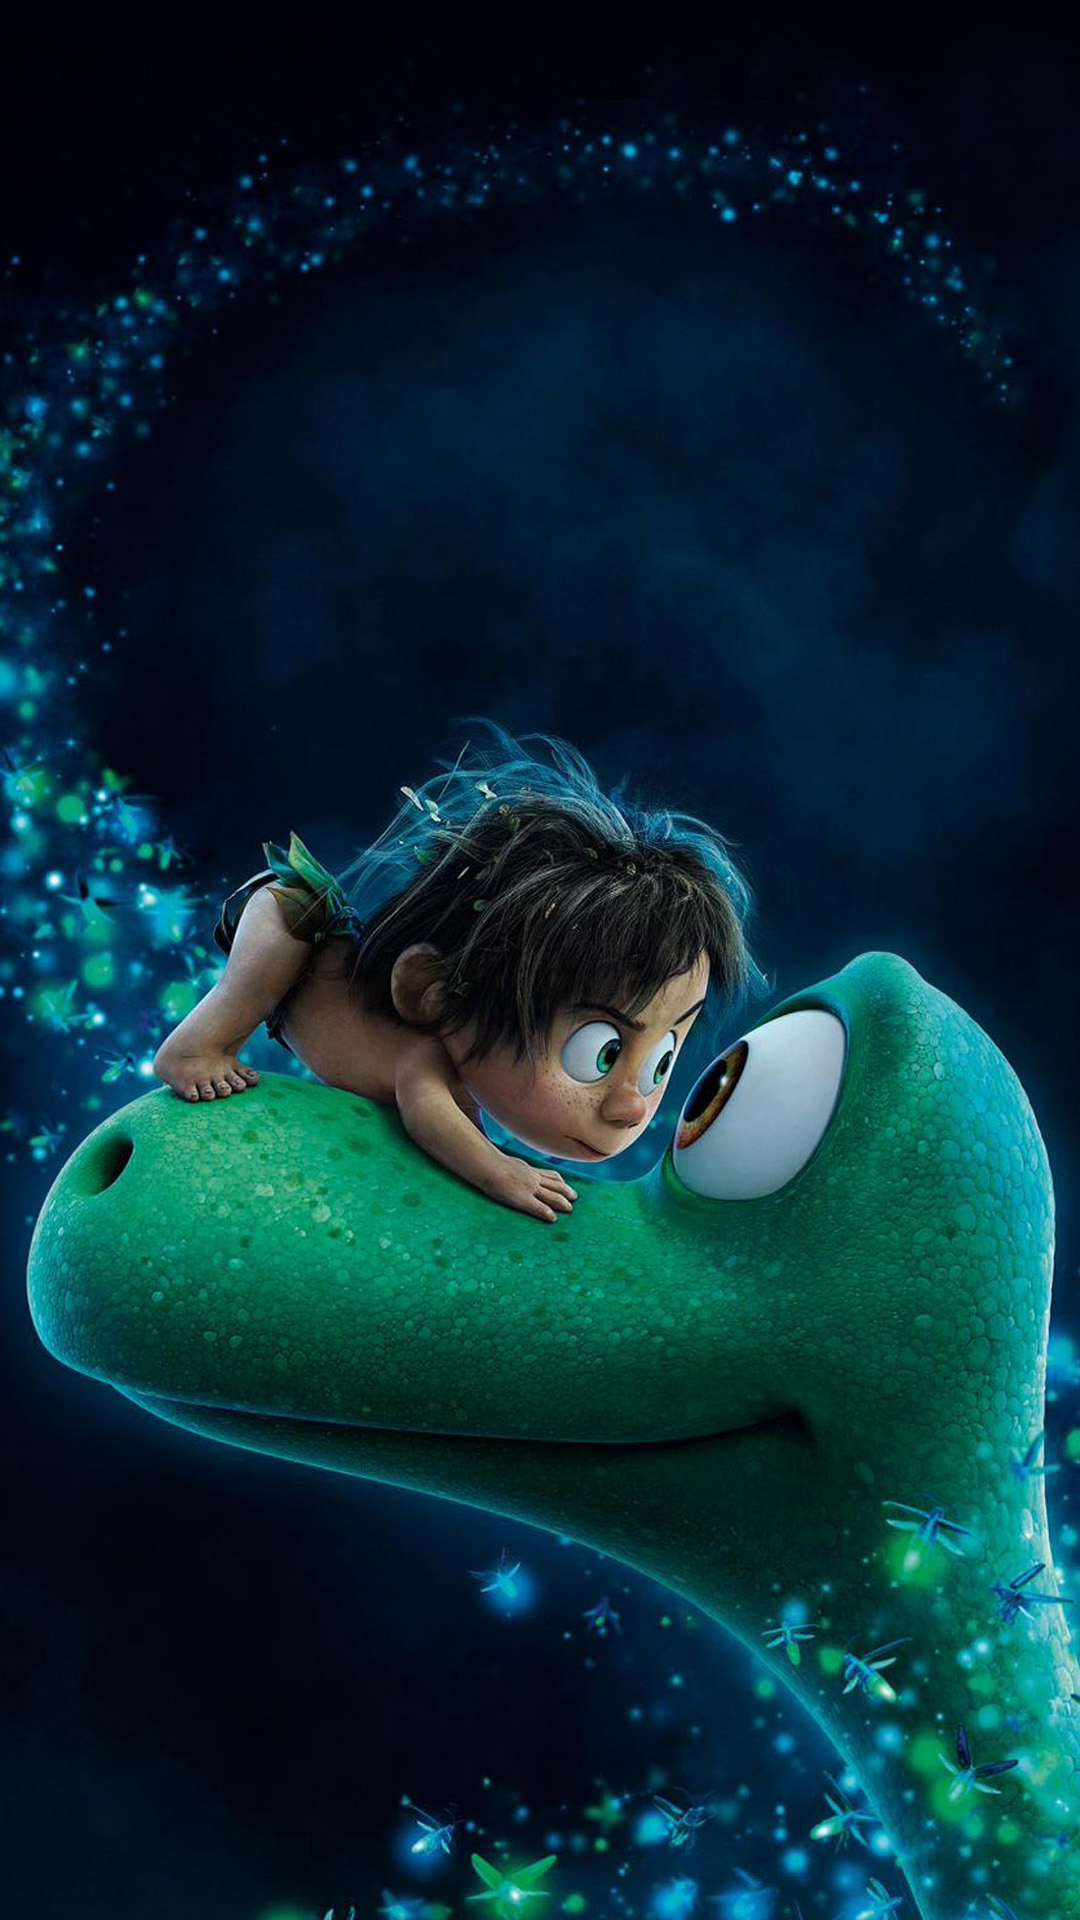 The Good Dinosaur  Downloadable Wallpaper for iOS   Android Phones     Samsung Galaxy S5 Android Wallpaper Good Dino 2